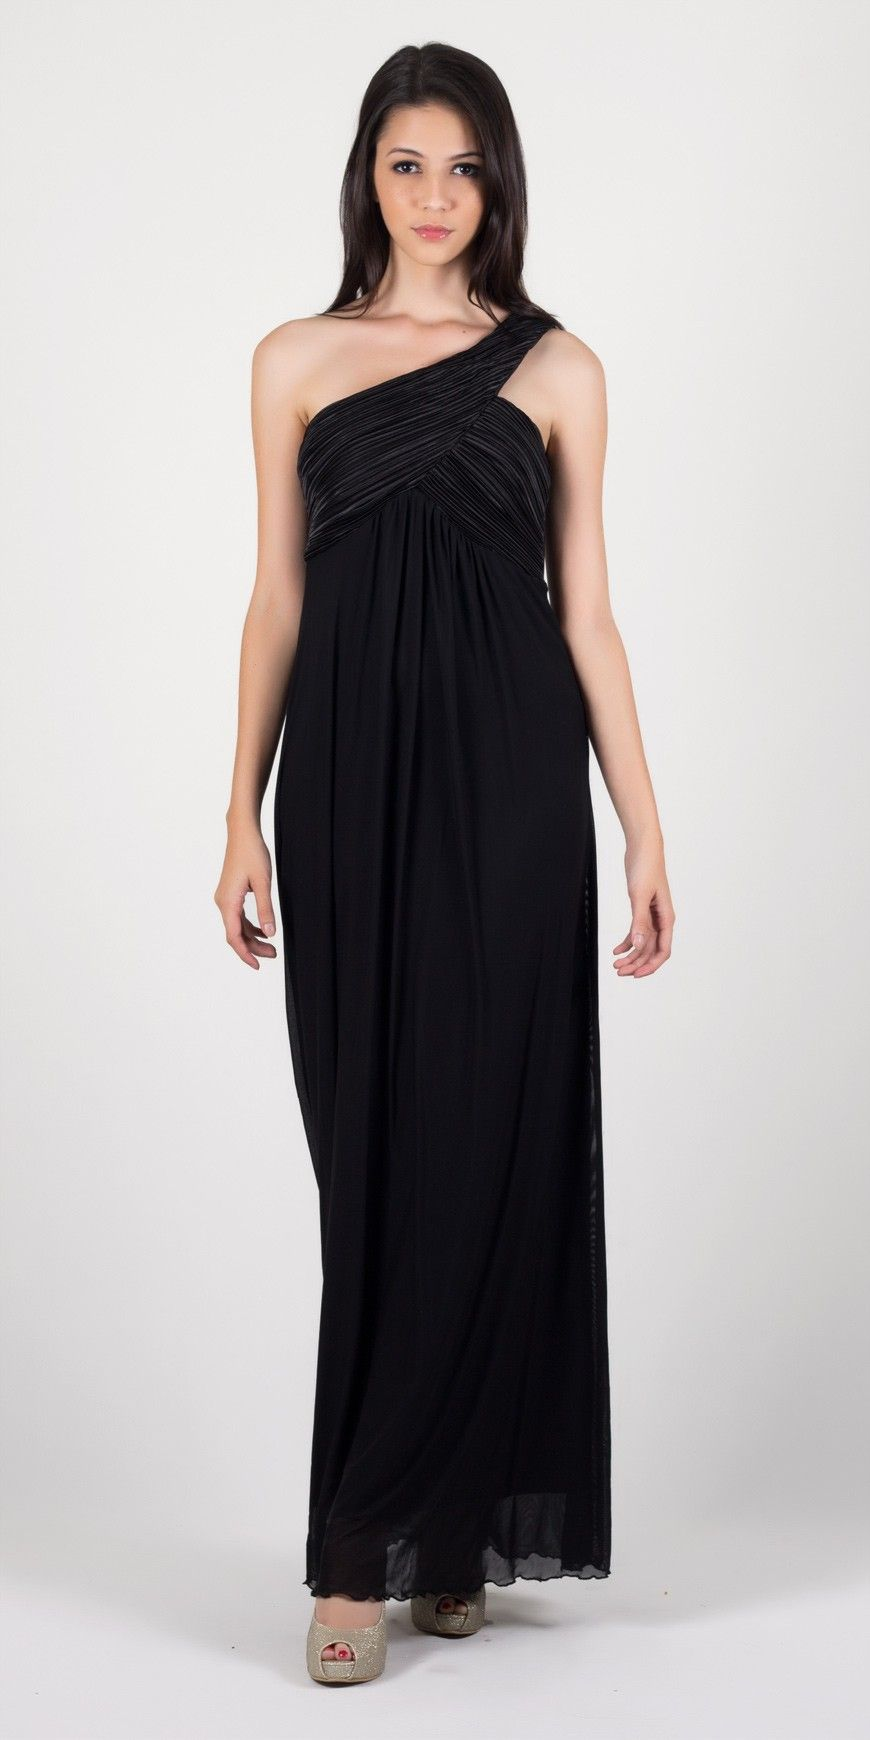 http://www.rarablack.com/store/index.php/shop/by-product/dresses/soiree-maxi-chiffon-with-bust-detailing.html